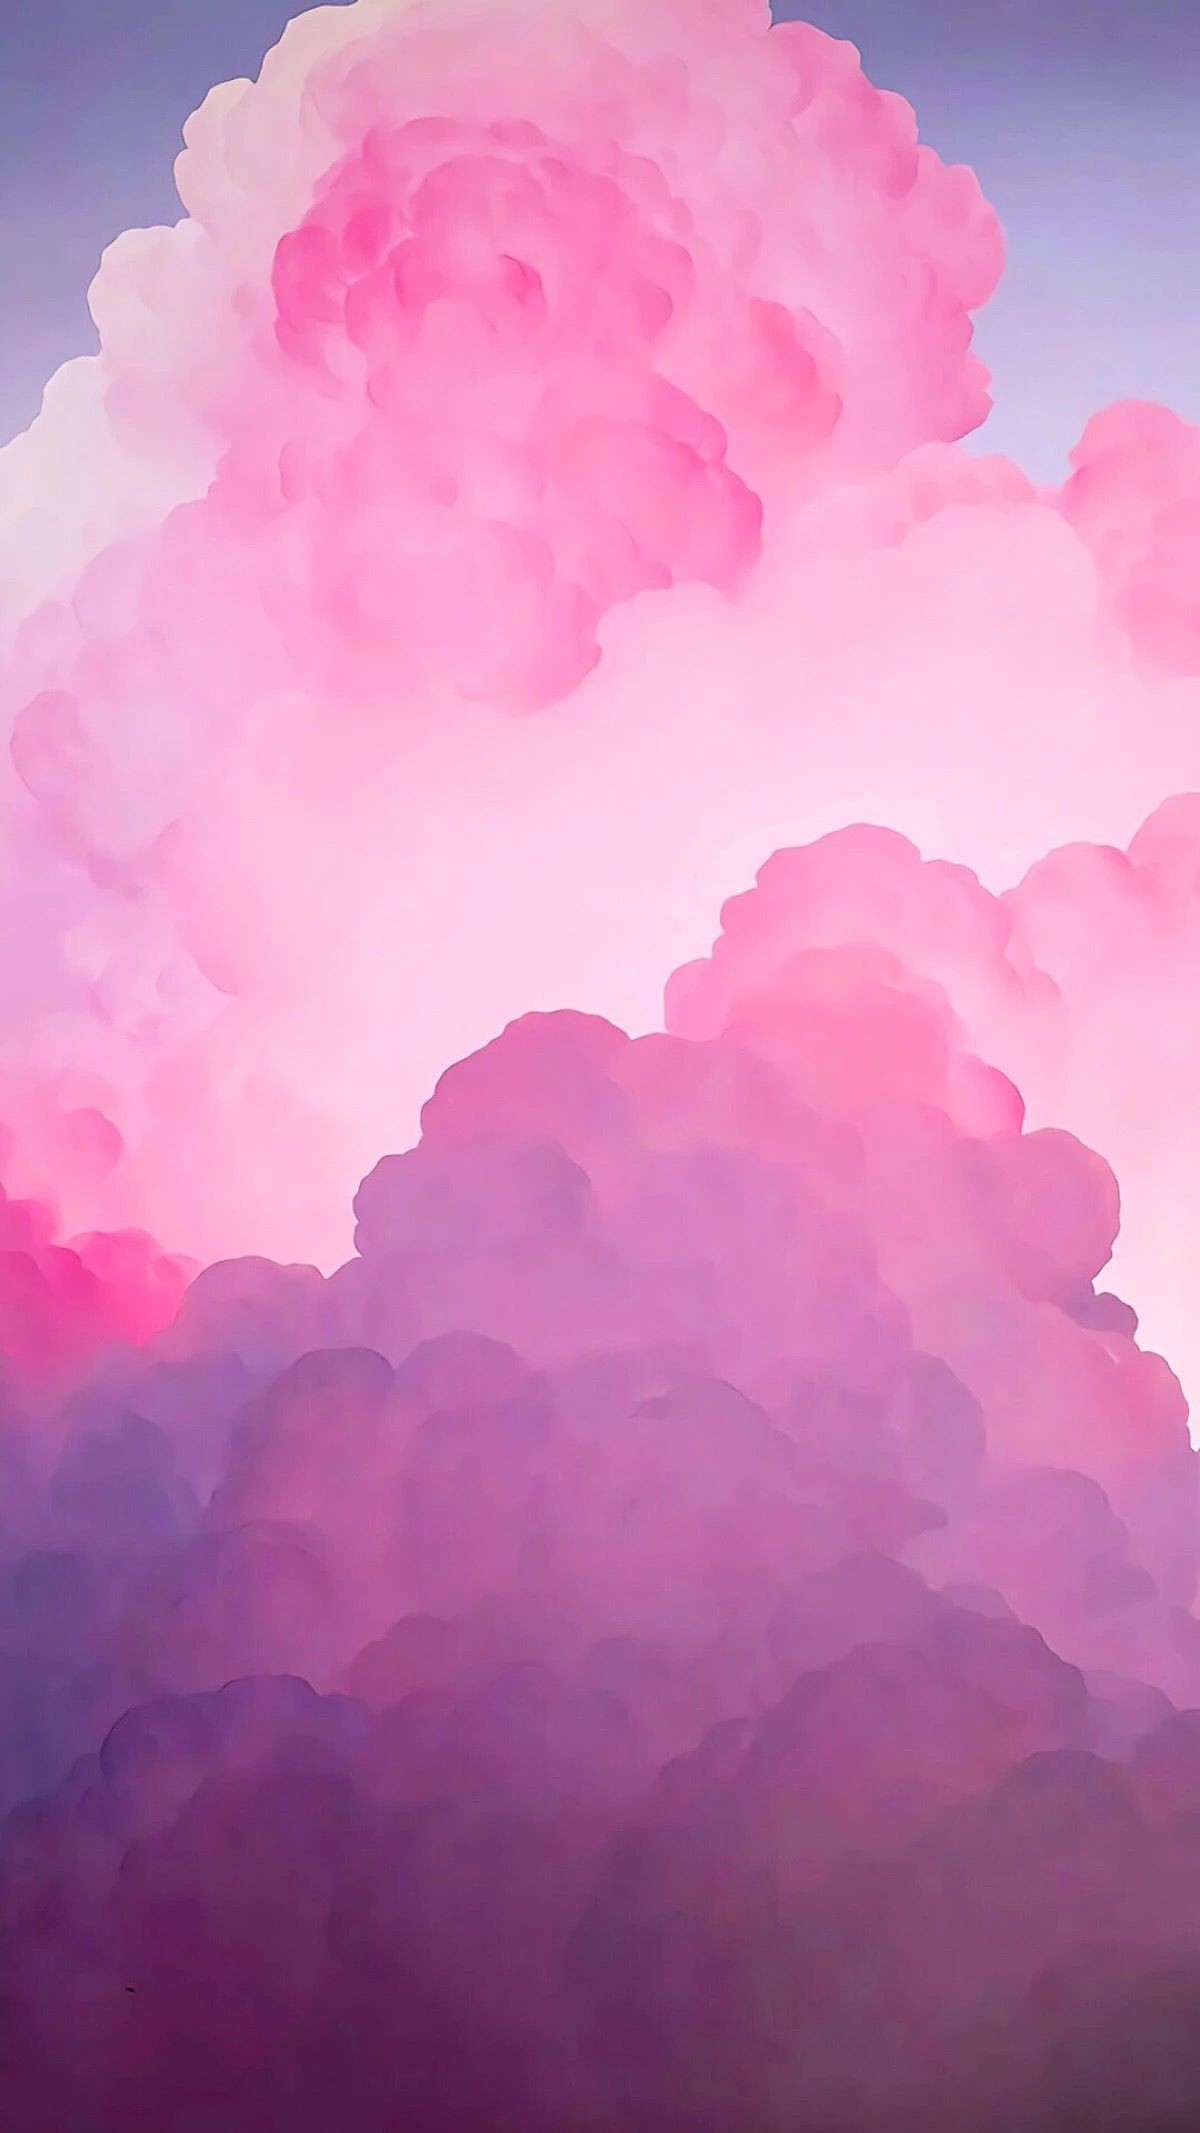 Res: 1200x2133, Colorful Clouds, Pink Clouds, Cloud Wallpaper, Painting Clouds, Iphone  Wallpapers, Wall Art, Convertible, Bond, Connect